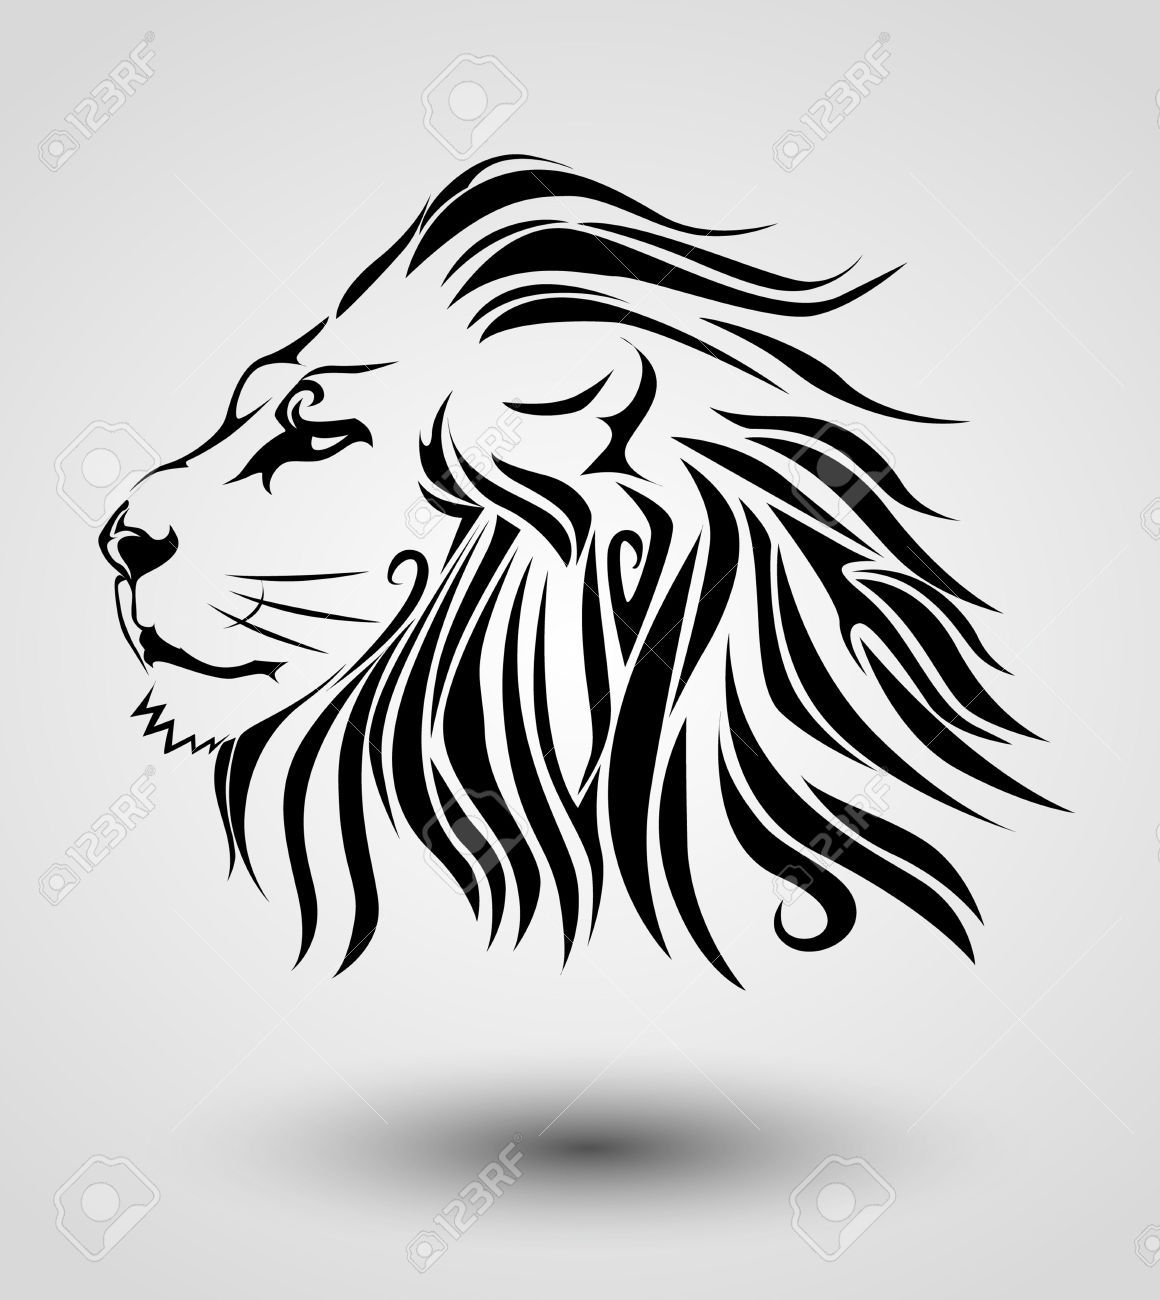 Tribal Lion Tribal Lion Lion Tattoo Meaning Lion Tattoo